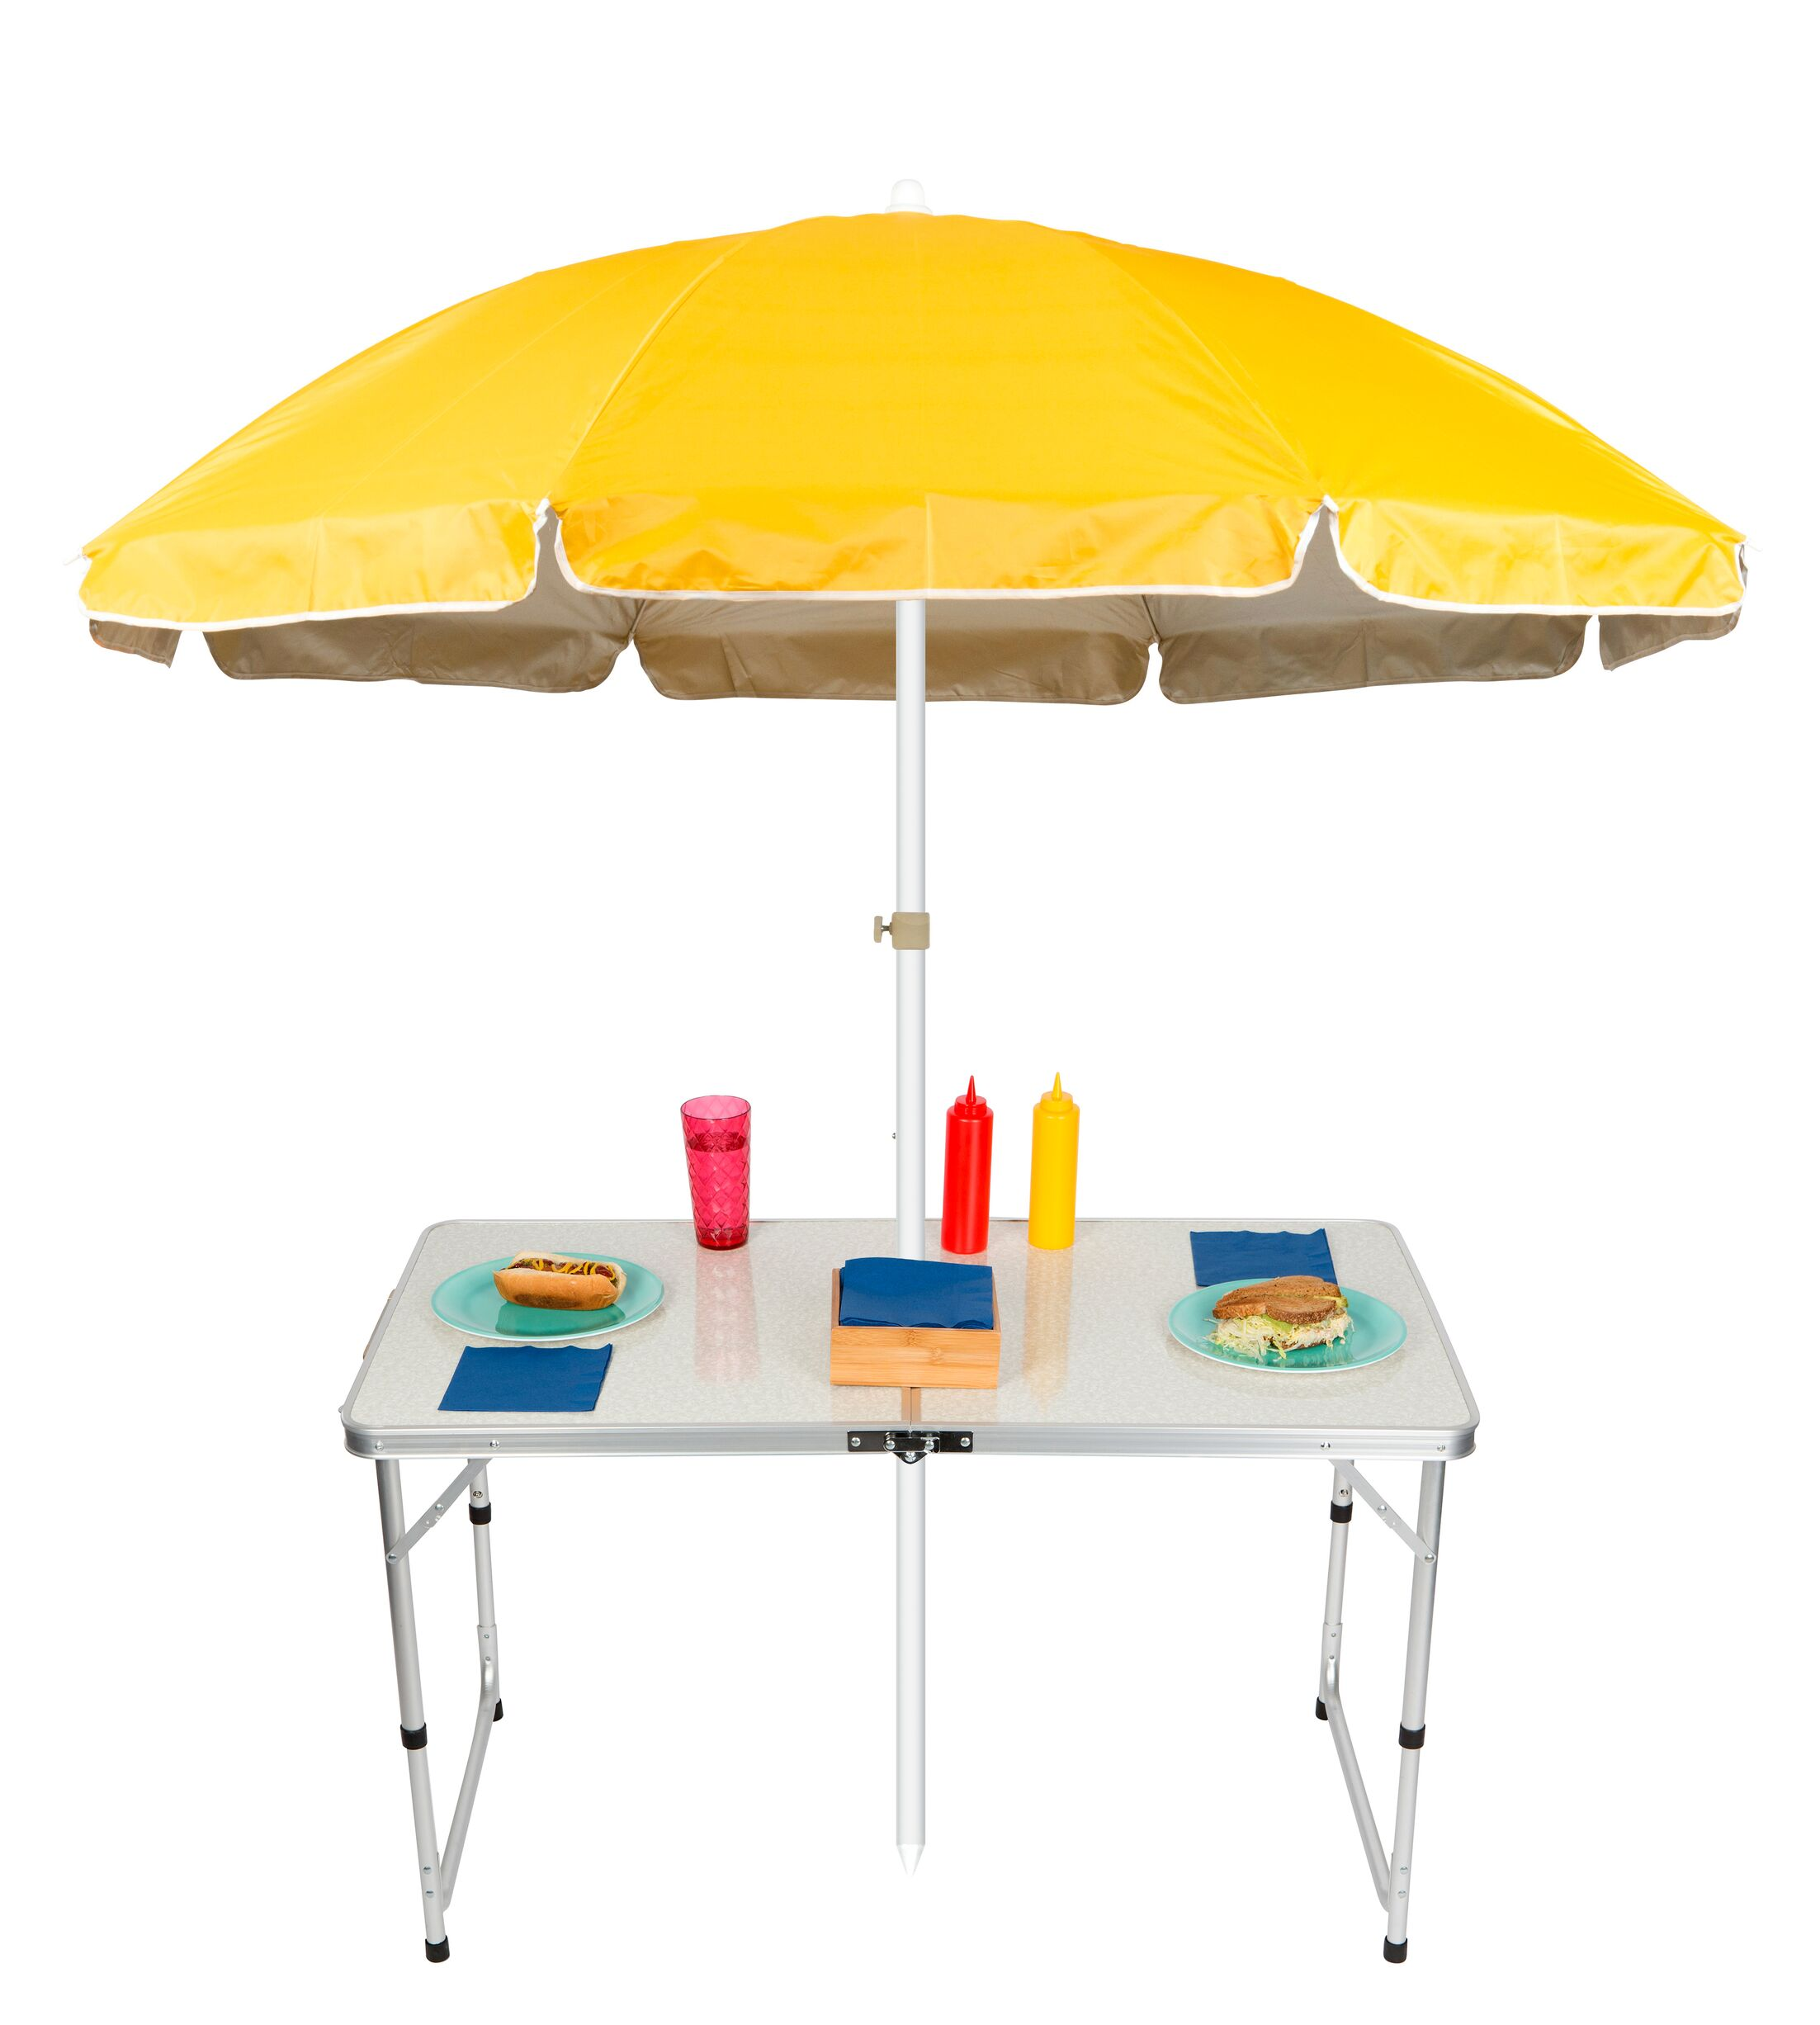 Adjustable Portable Folding Camp Table 6.5' Beach Umbrella Color: Yellow